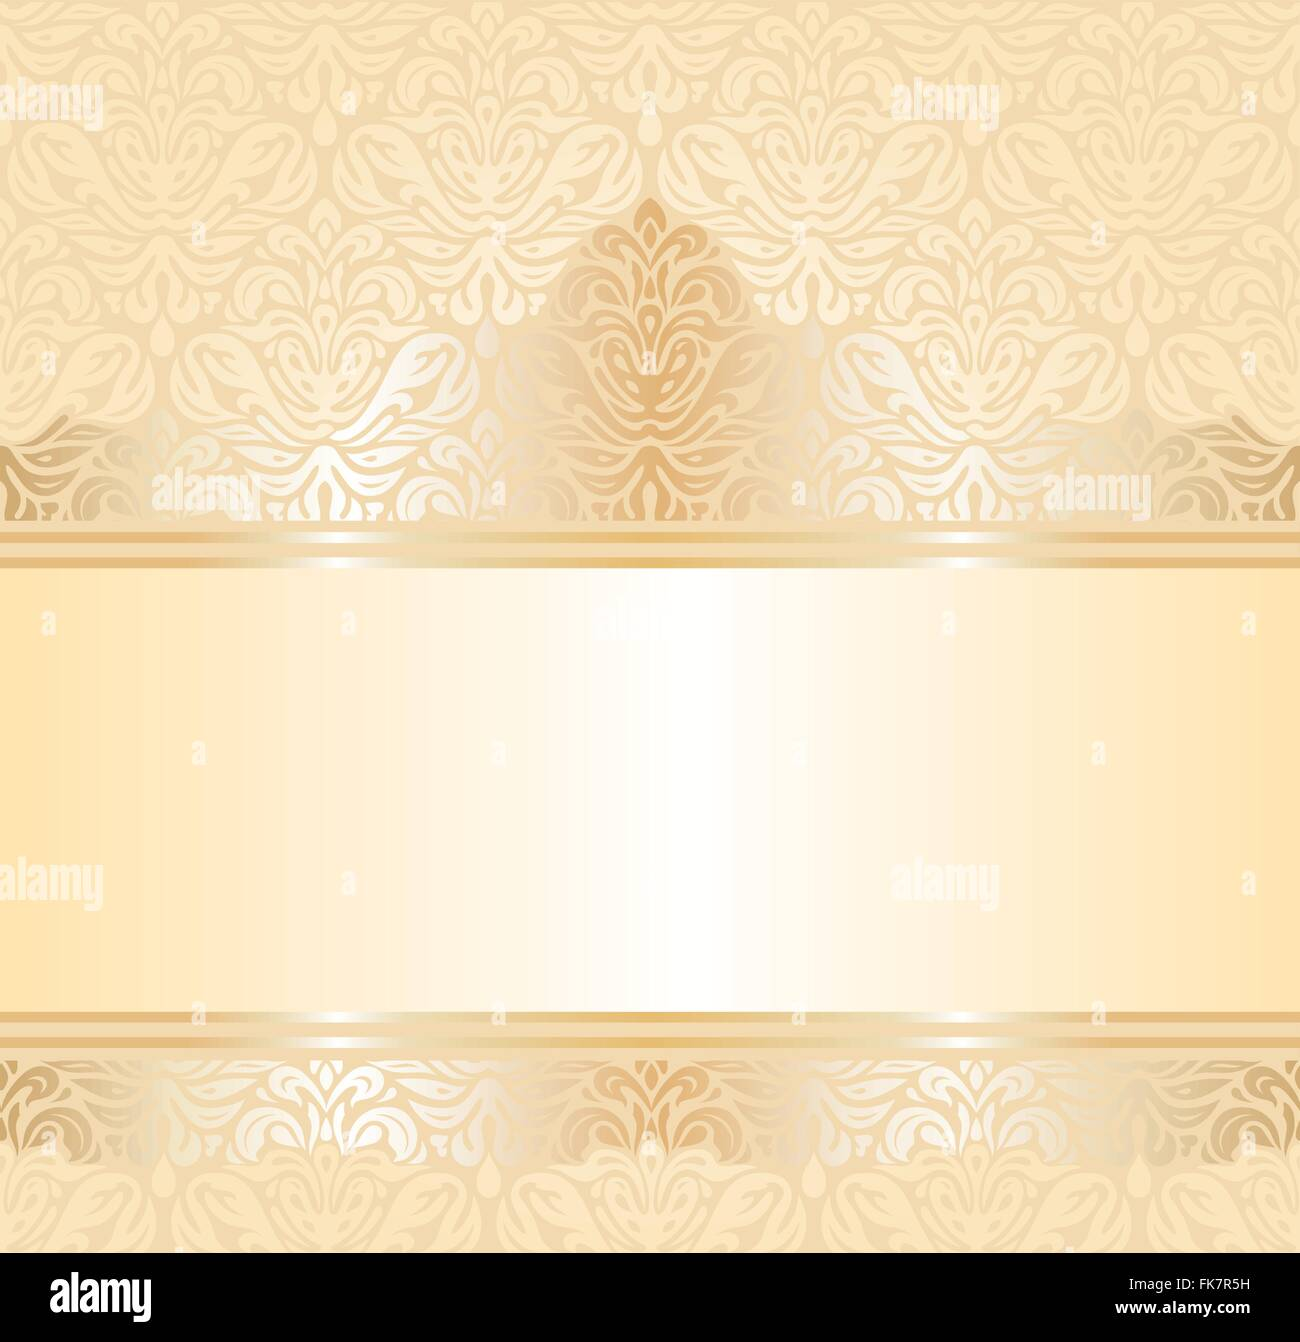 gentle wedding pale peach invitation  background design - Stock Vector